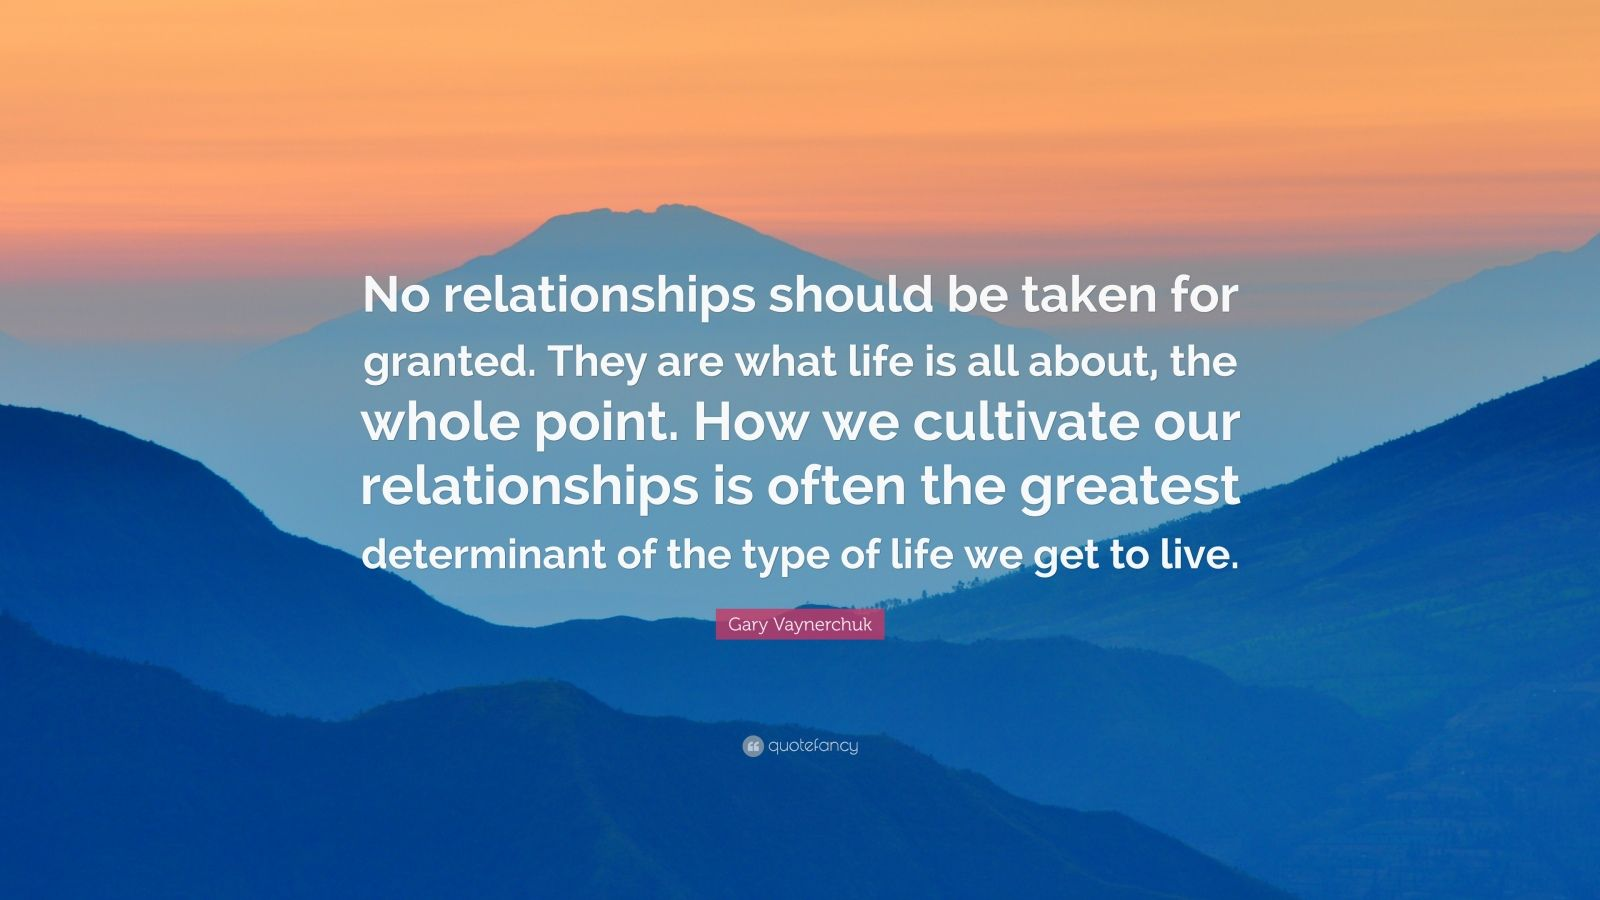 """Gary Vaynerchuk Quote: """"No relationships should be taken for granted. They are what life is all about, the whole point. How we cultivate our relationships is often the greatest determinant of the type of life we get to live."""""""